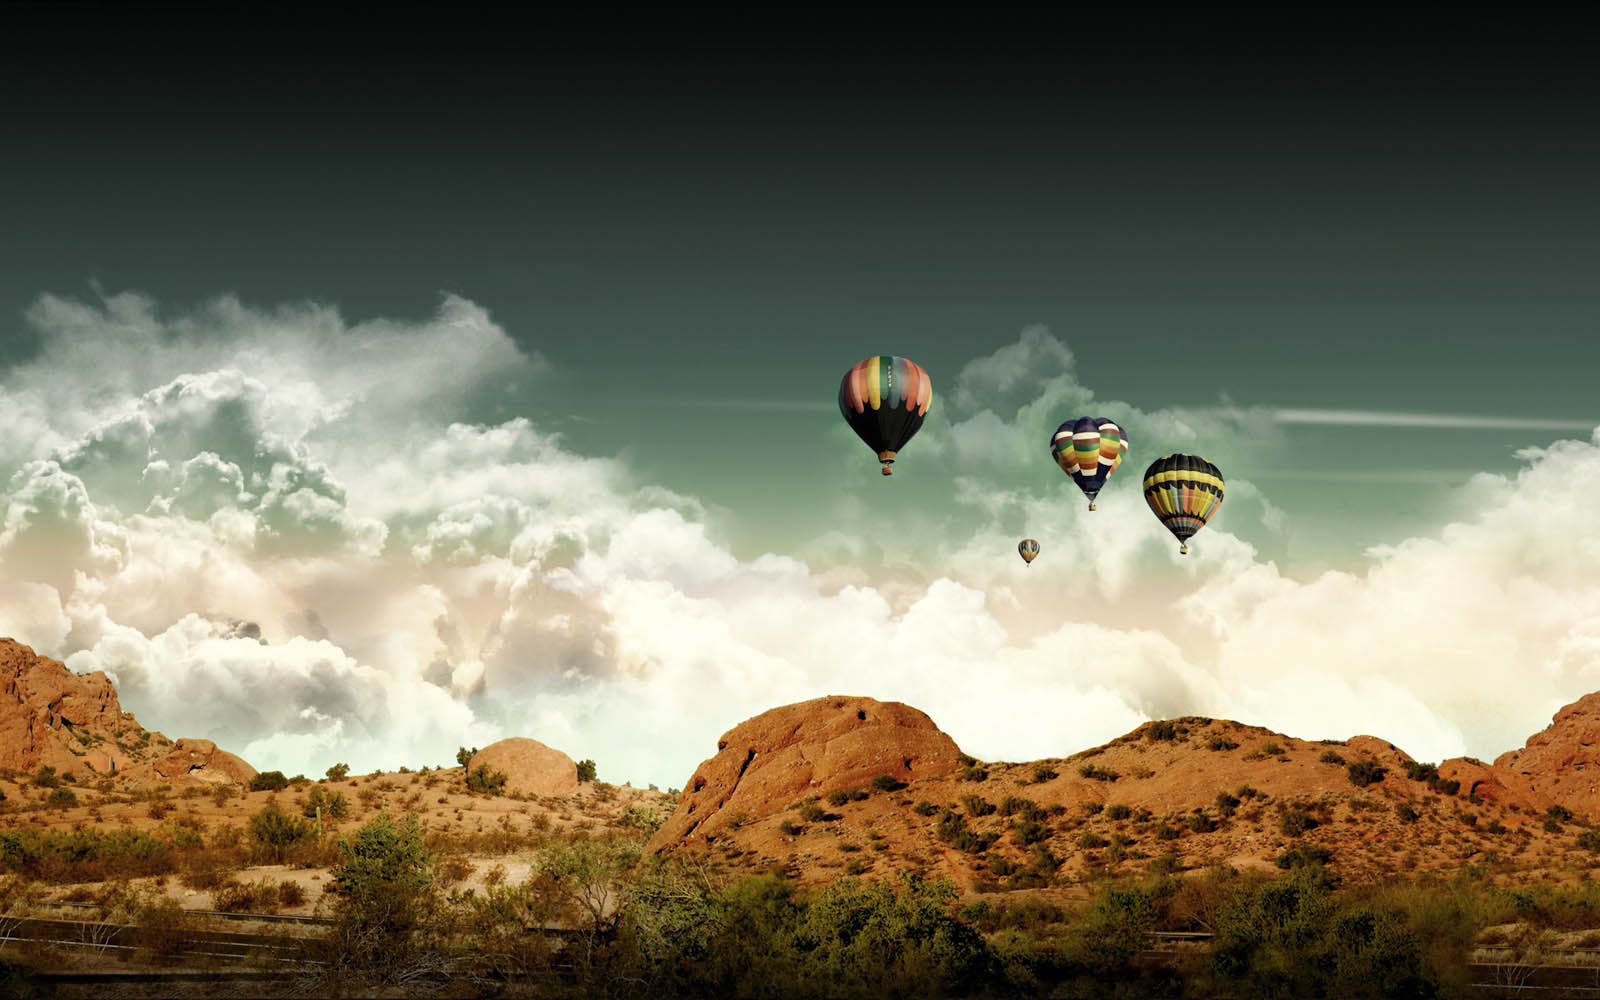 balloons wallpapers - photo #38